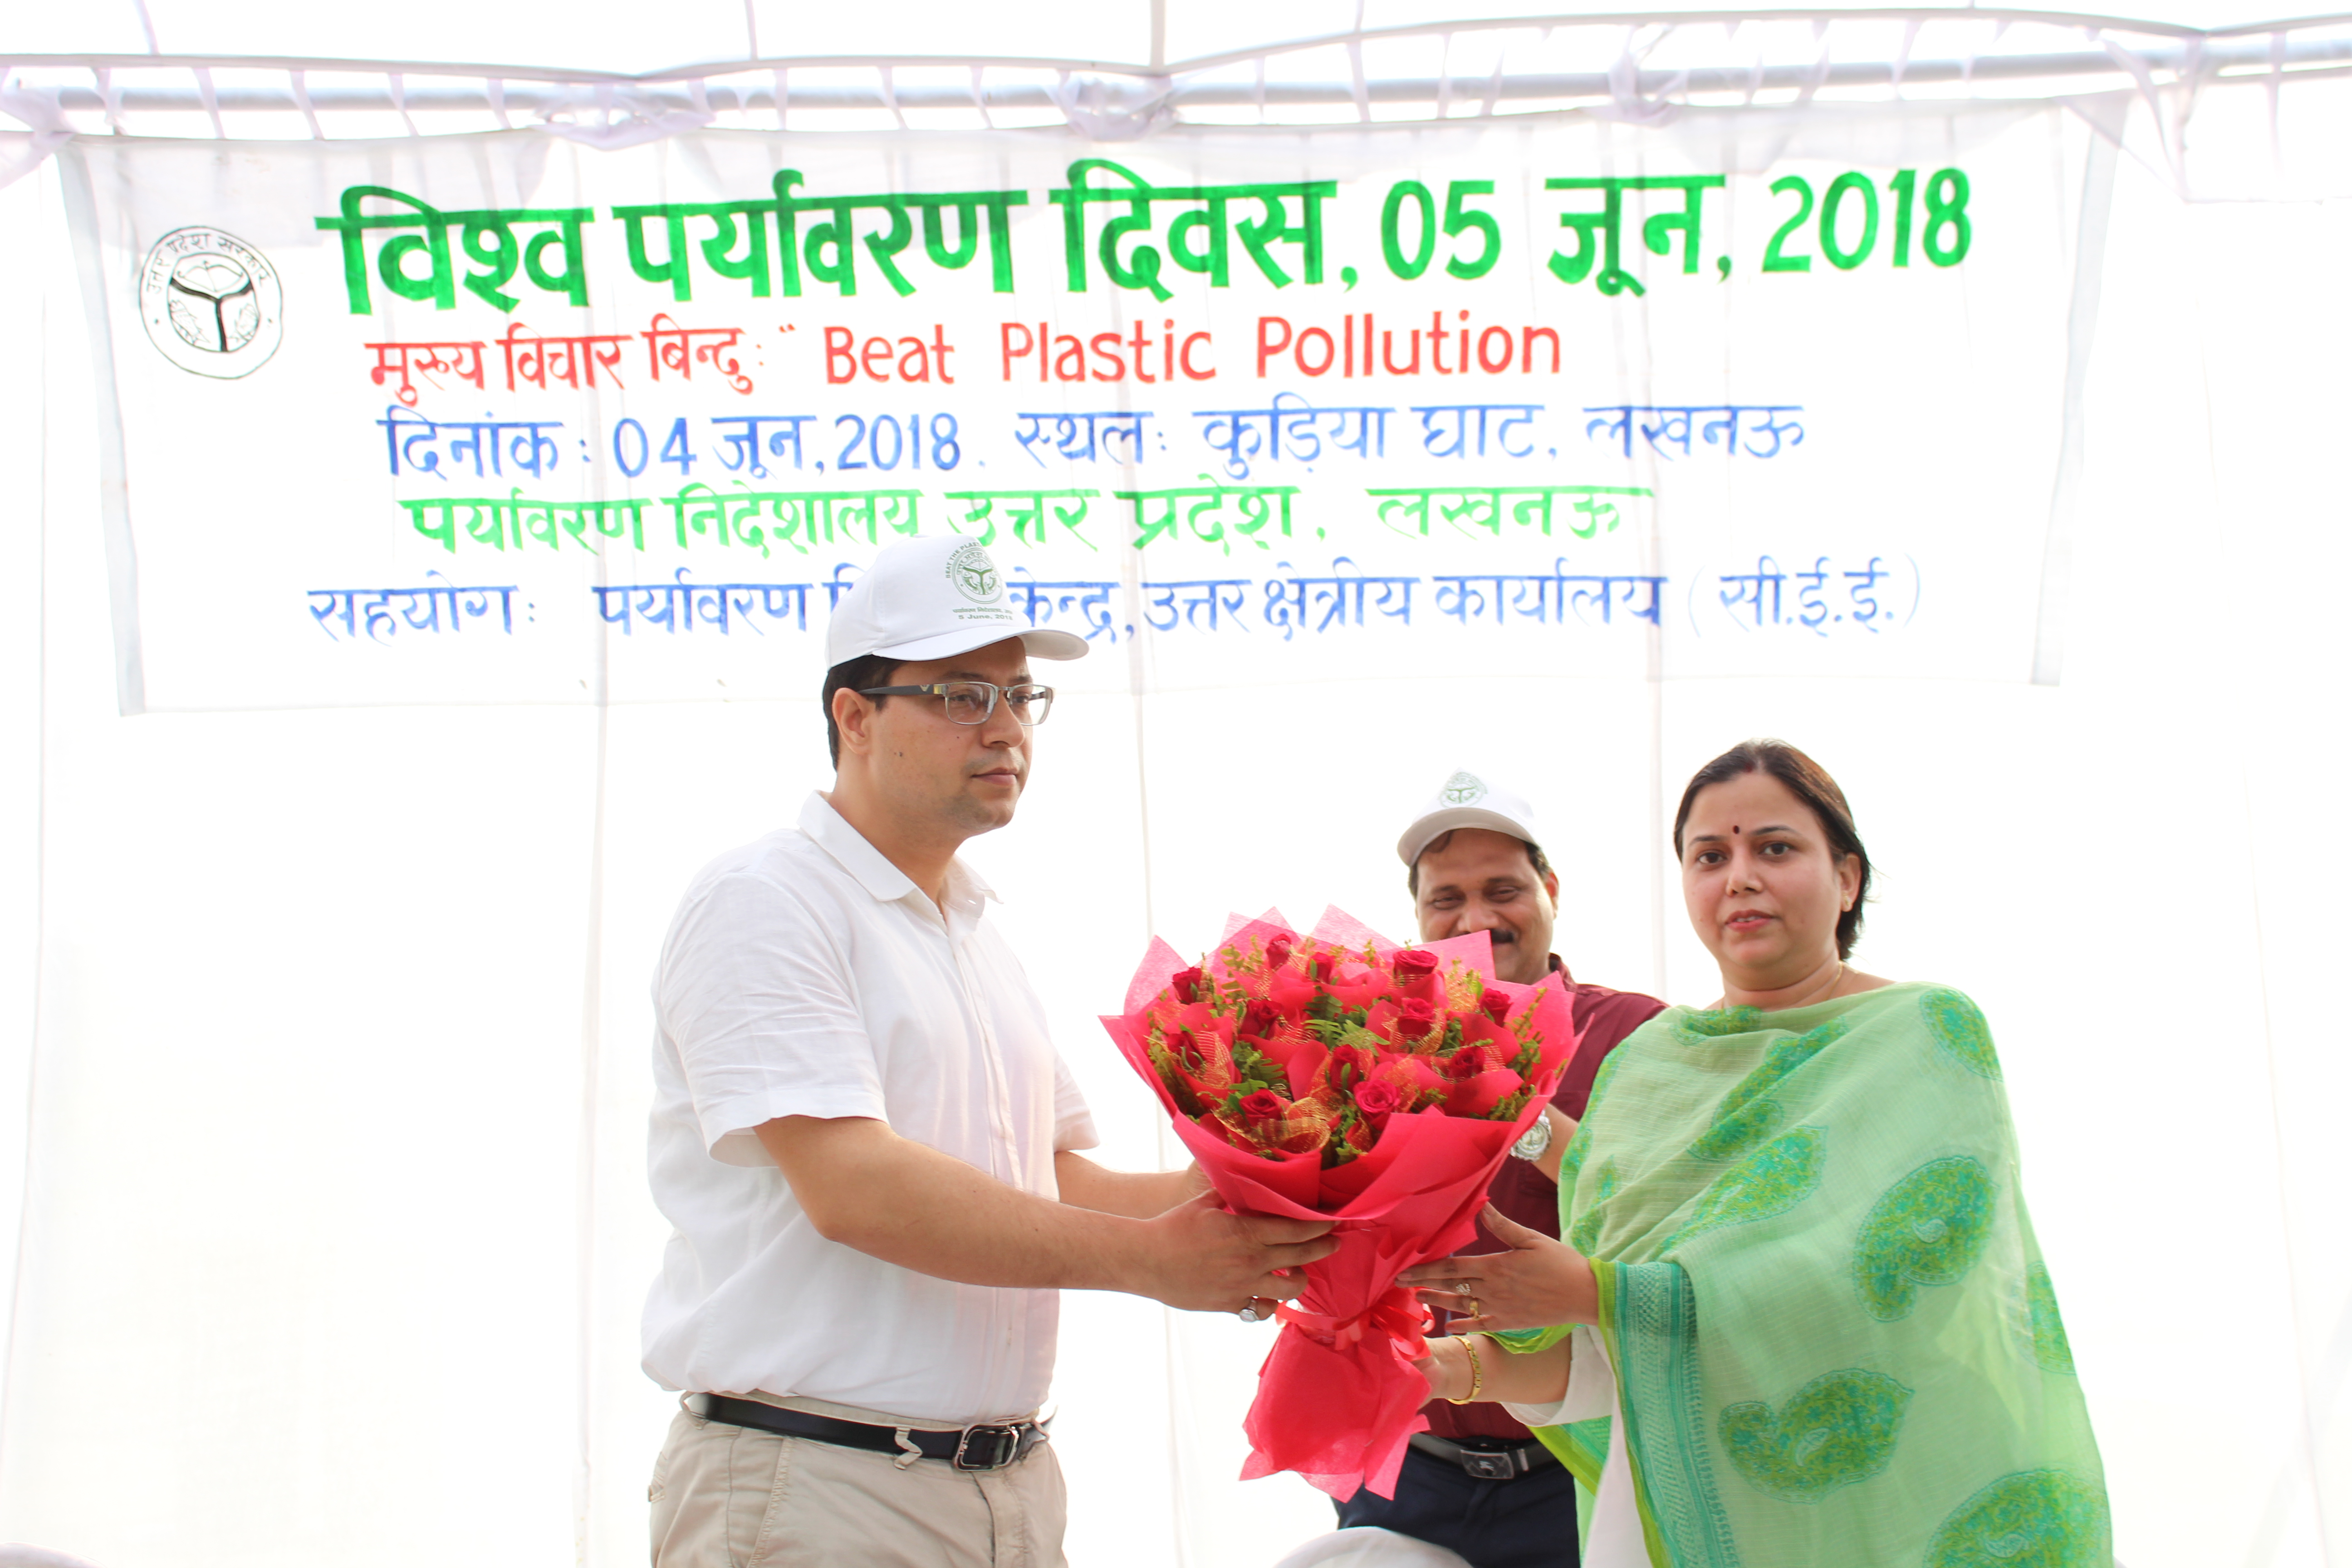 World Environment Day 2018 Celebration at Regional Science City, Lucknow